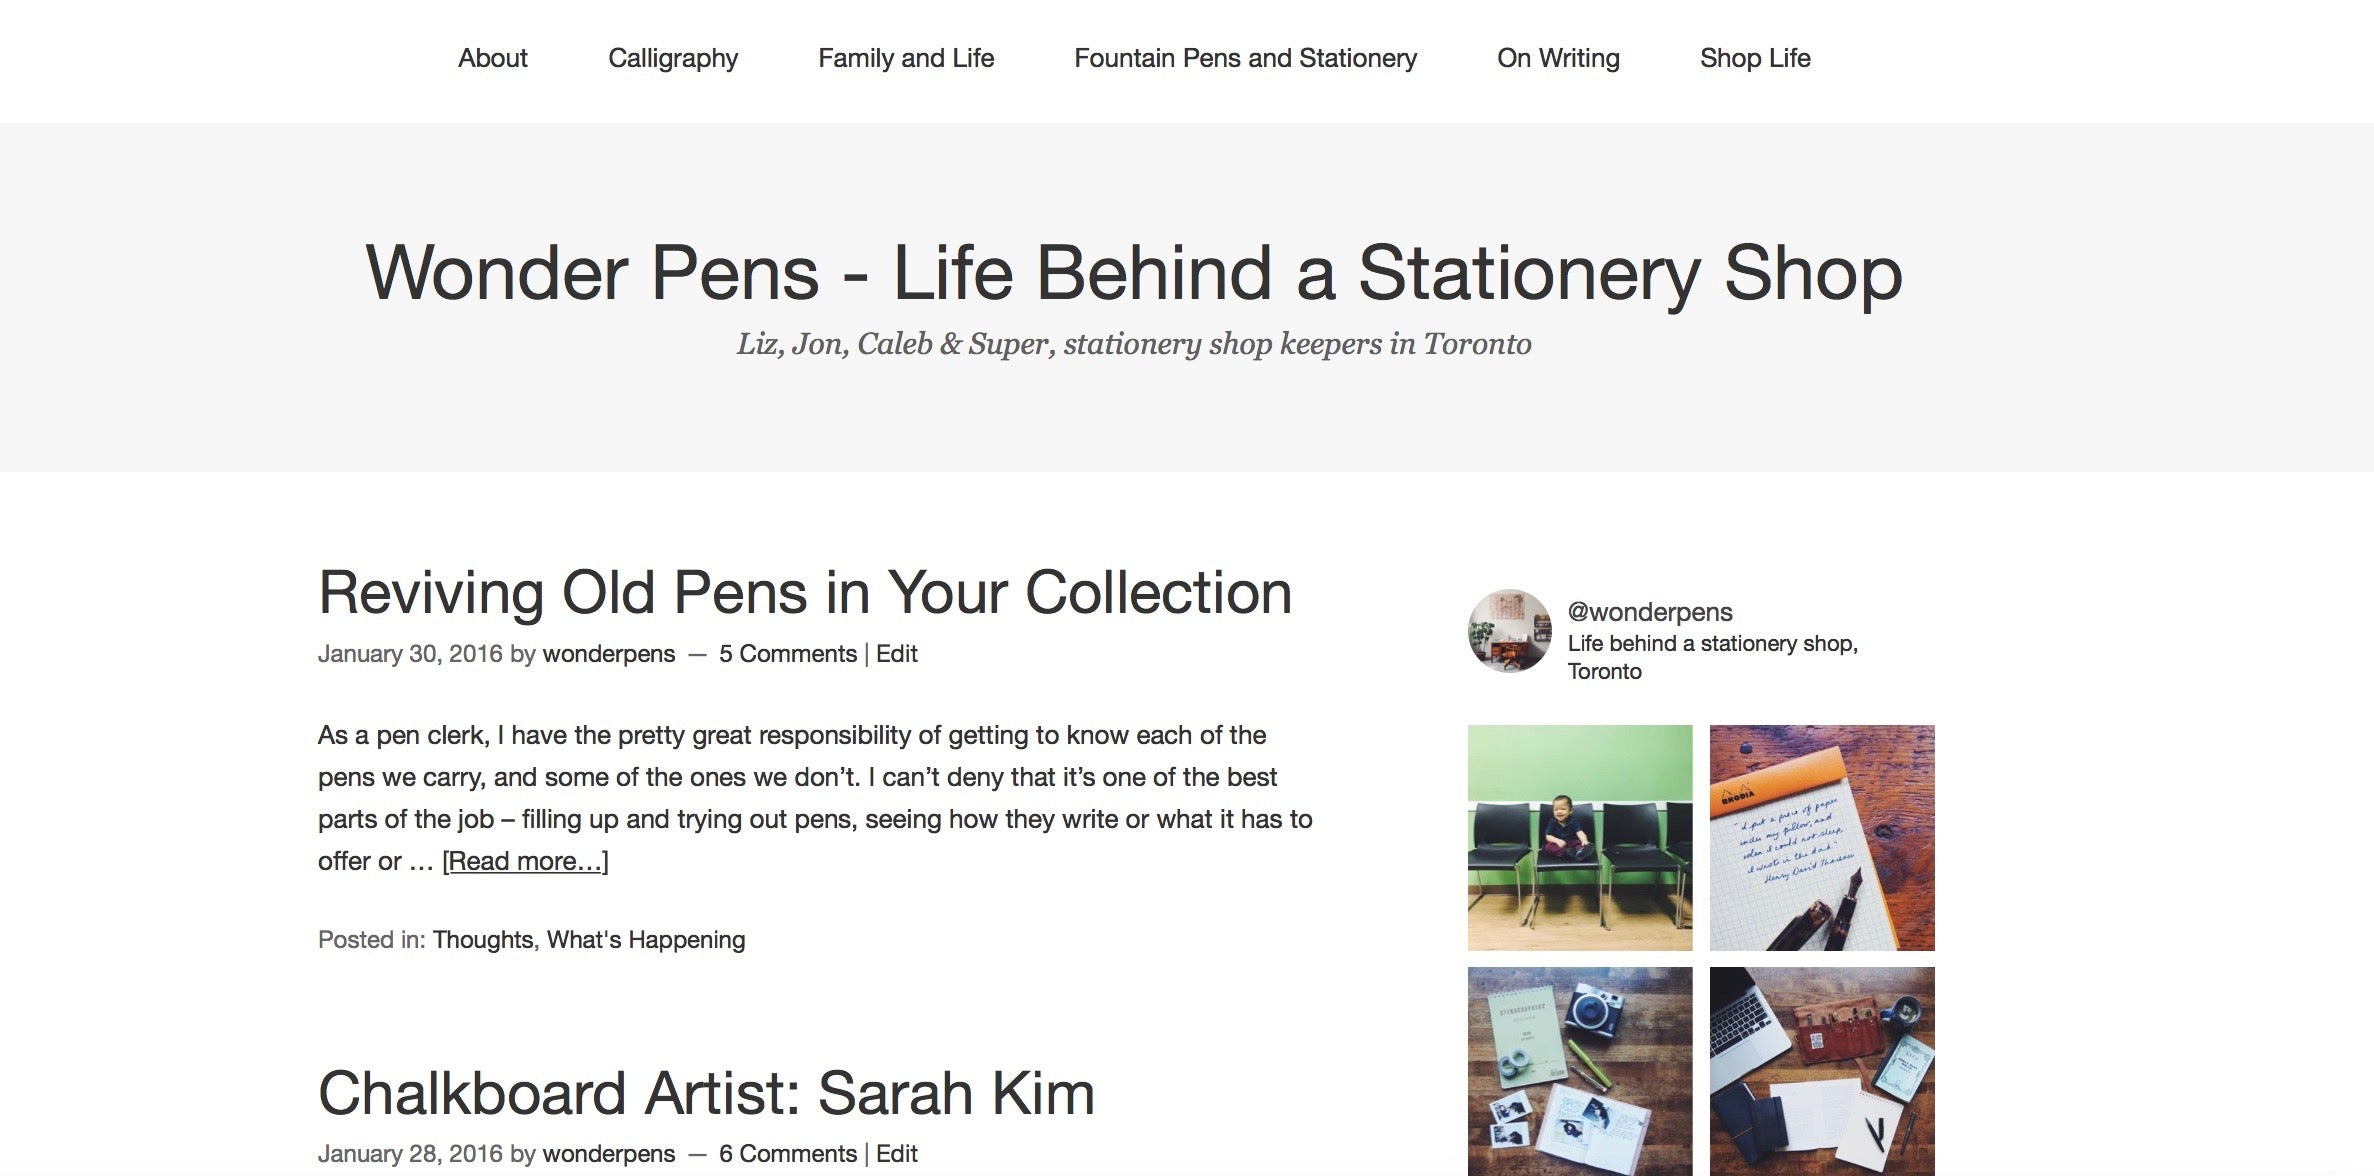 Wonder Pens Blog Life Behind a Stationery Shop